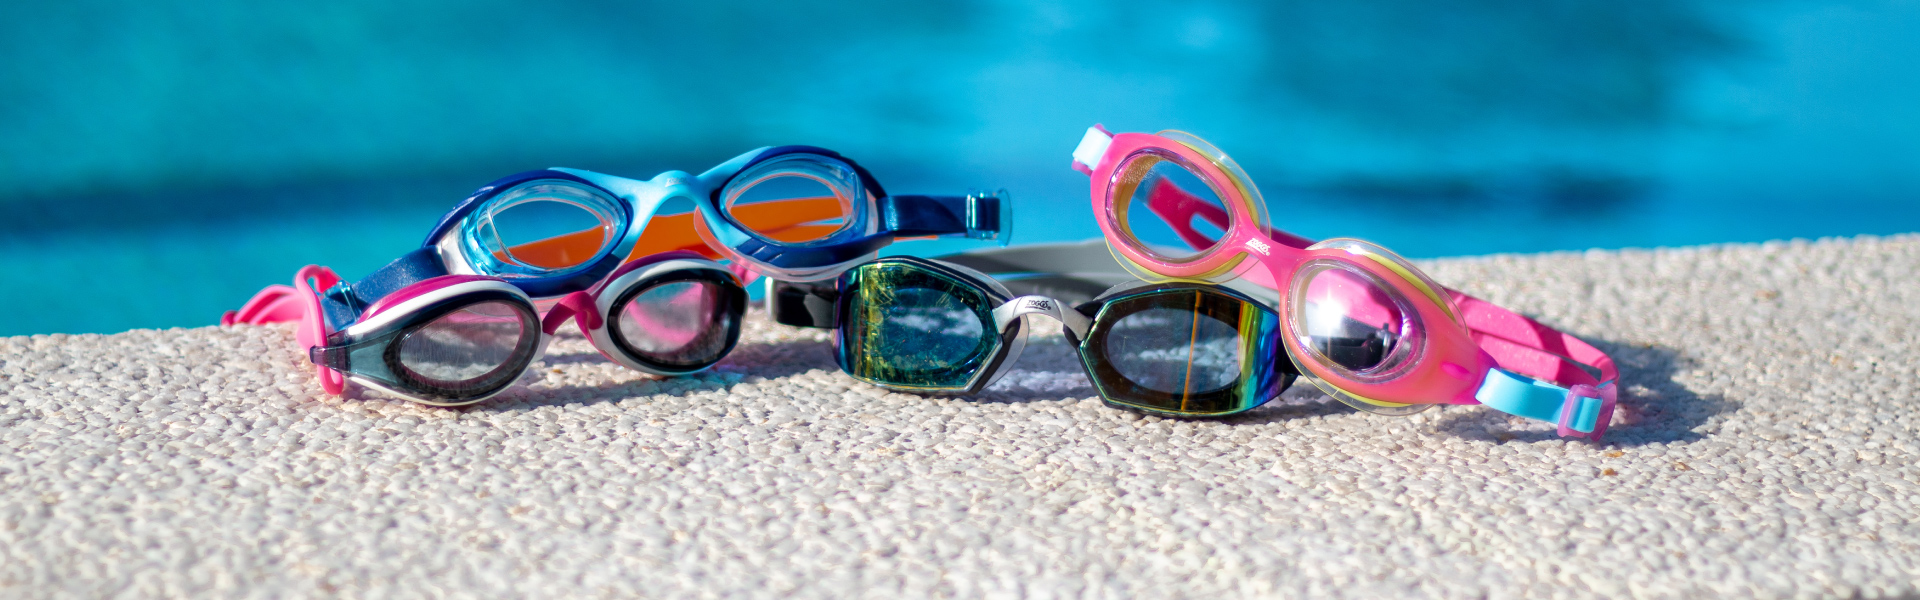 Choosing and caring for your goggles